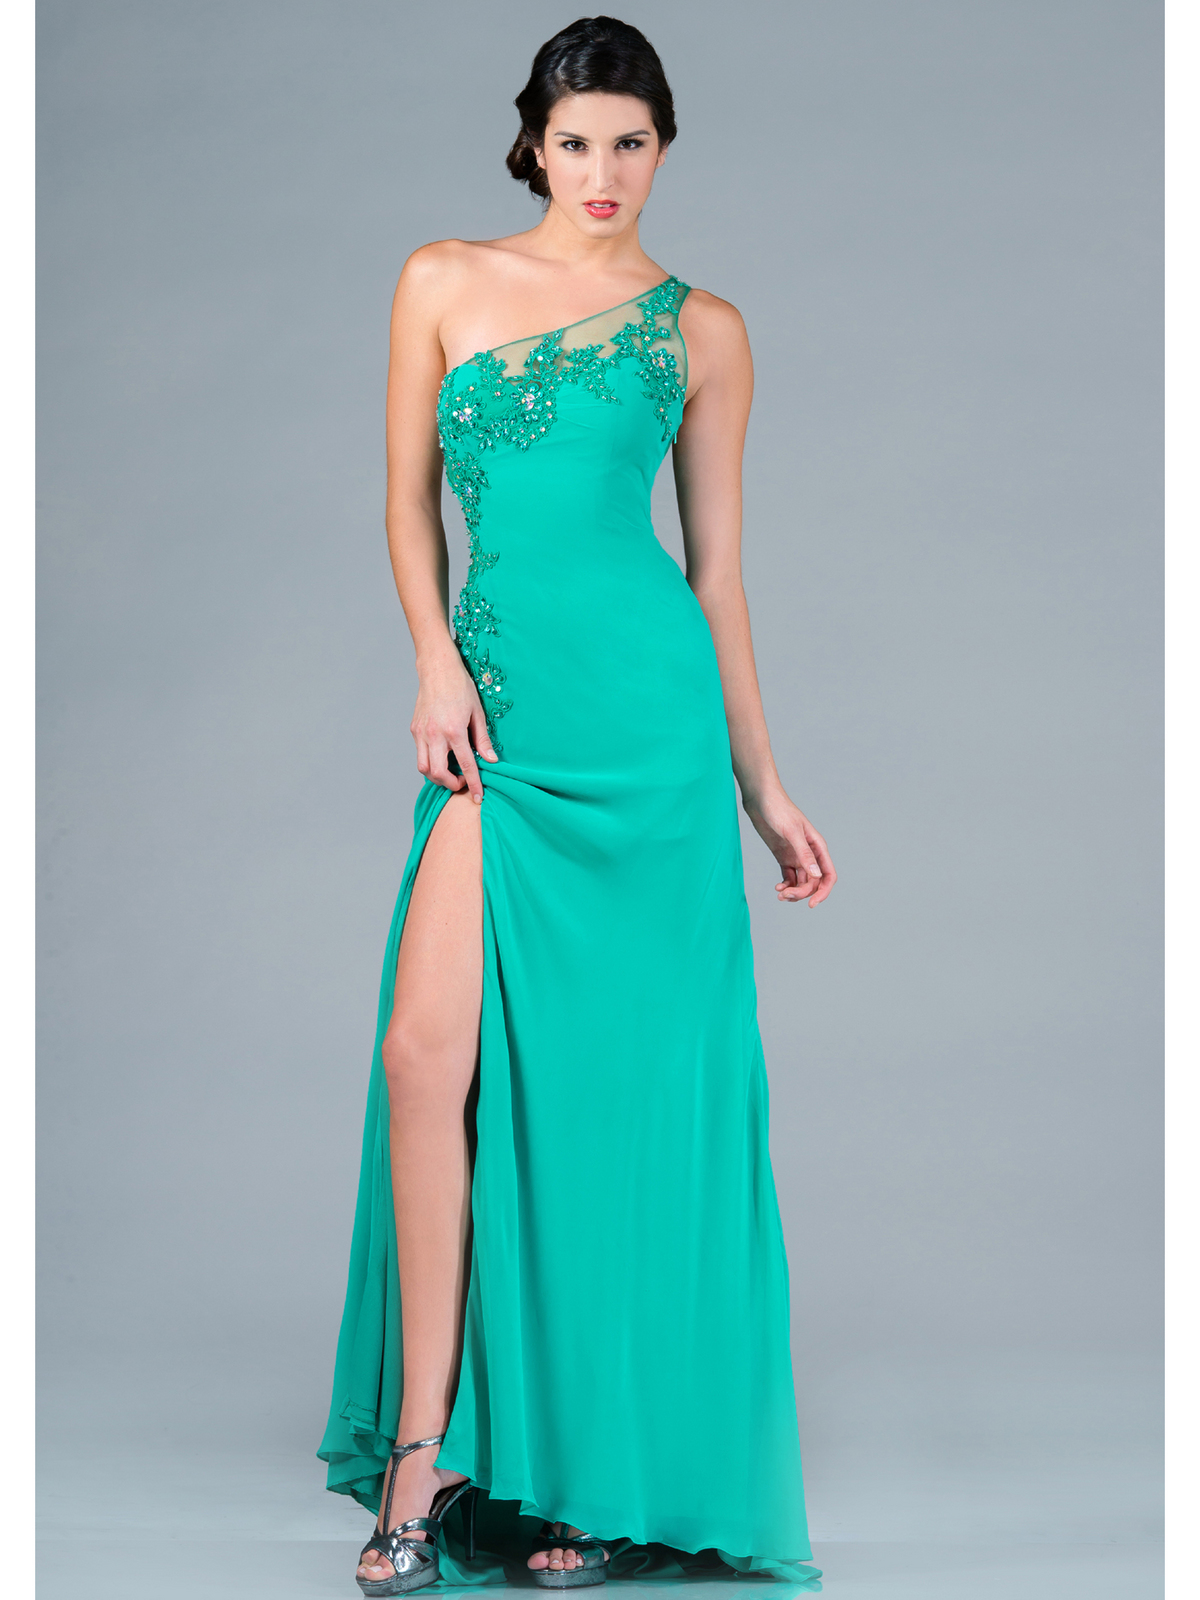 los angeles boutiques prom dresses_Prom Dresses_dressesss